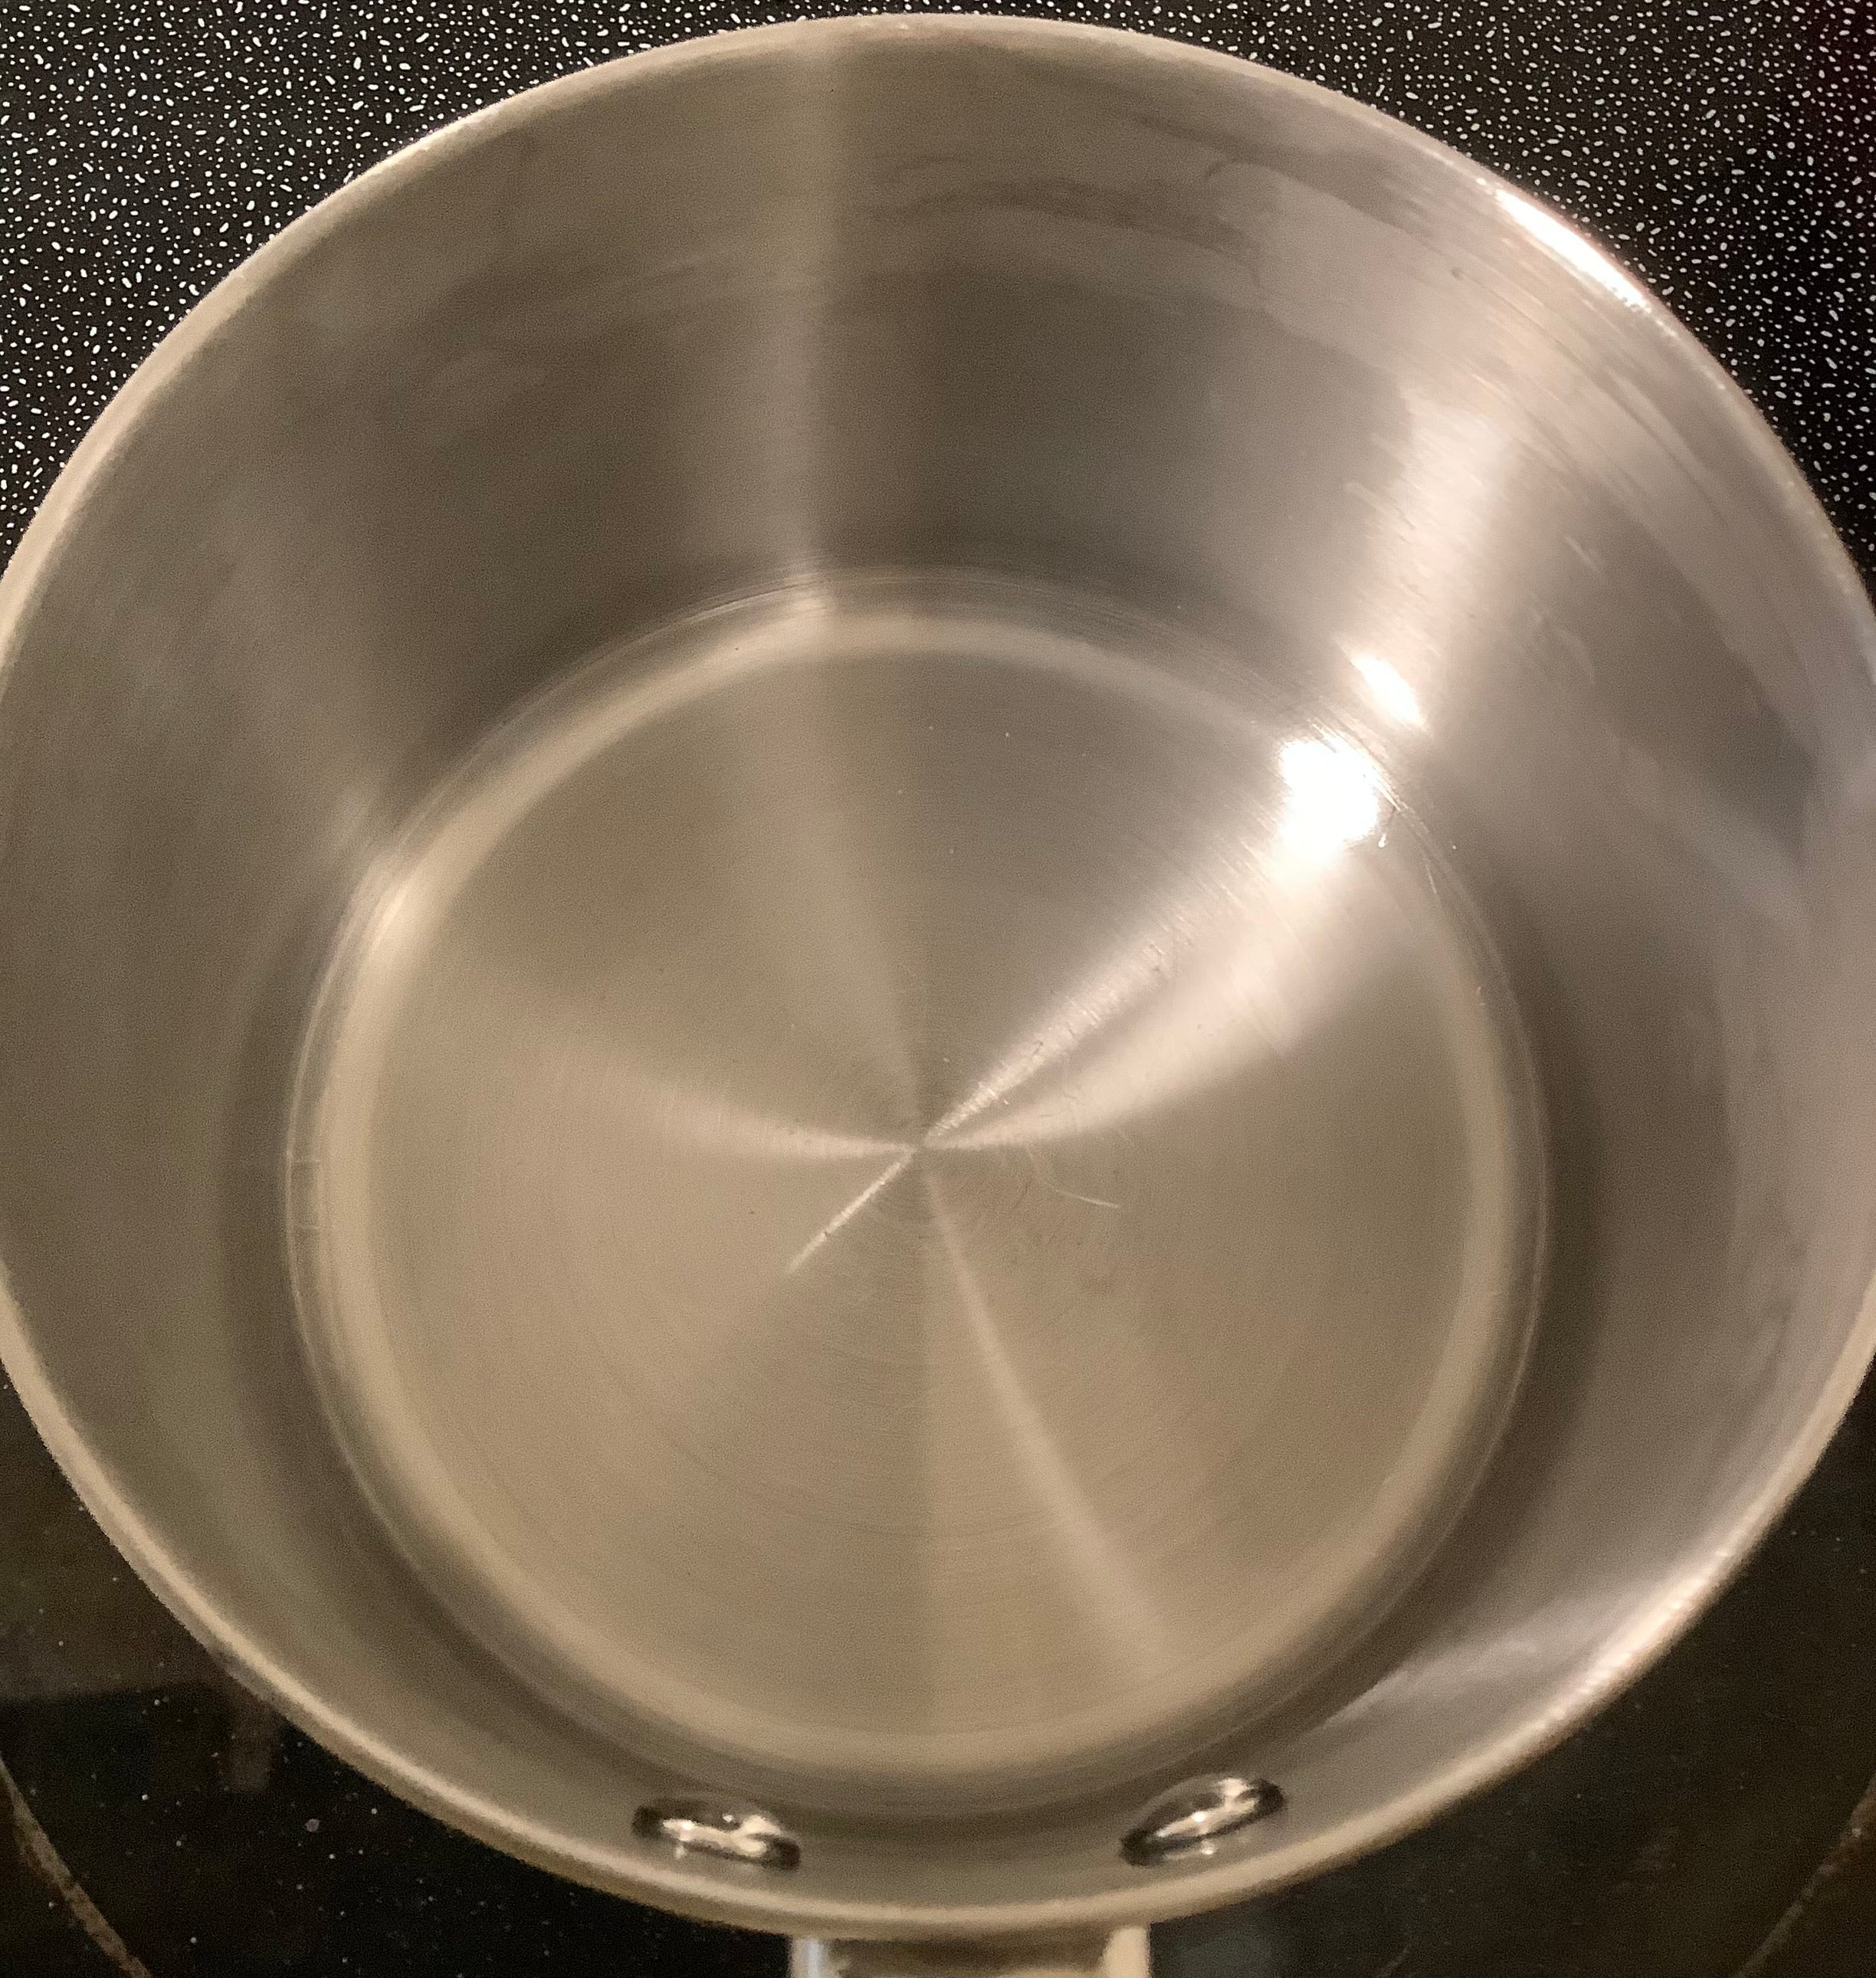 Stainless Steel Cooking Pot With Burnt Scorched Damage After Cleaning